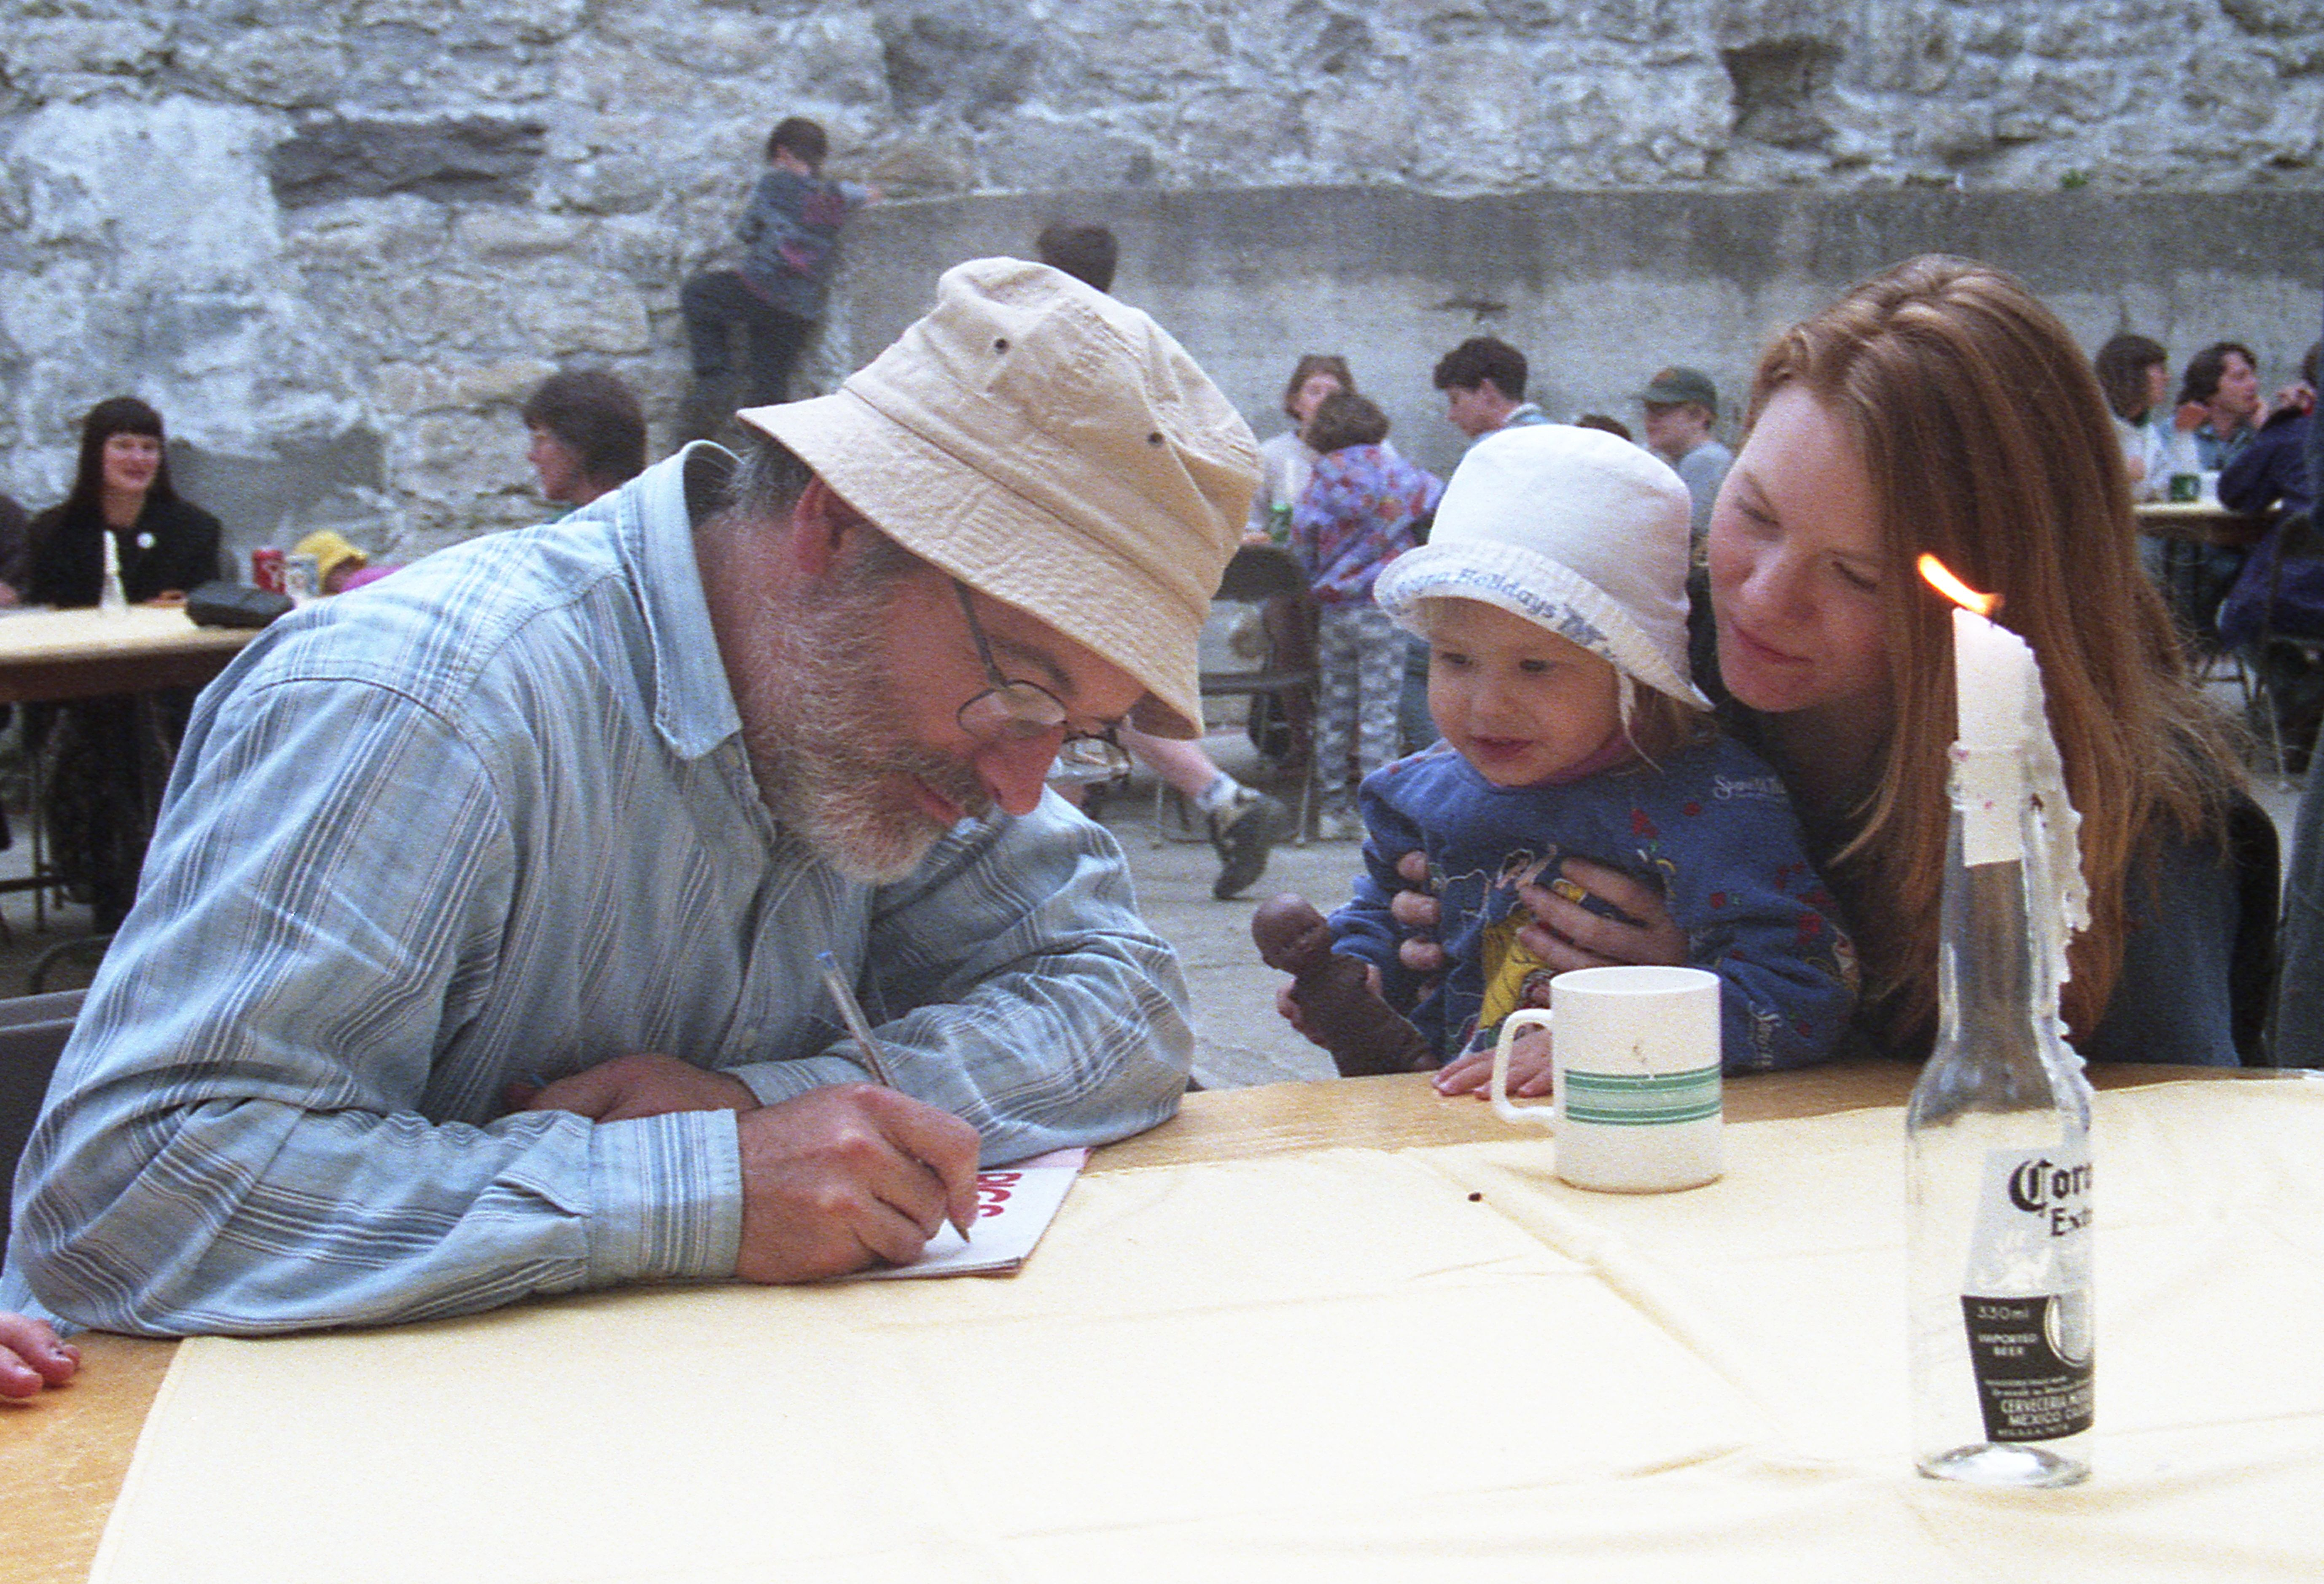 Munsch signs autograph for a young fan at [[Guelph, Ontario|Guelph, Ontario, Canada]] in 1997